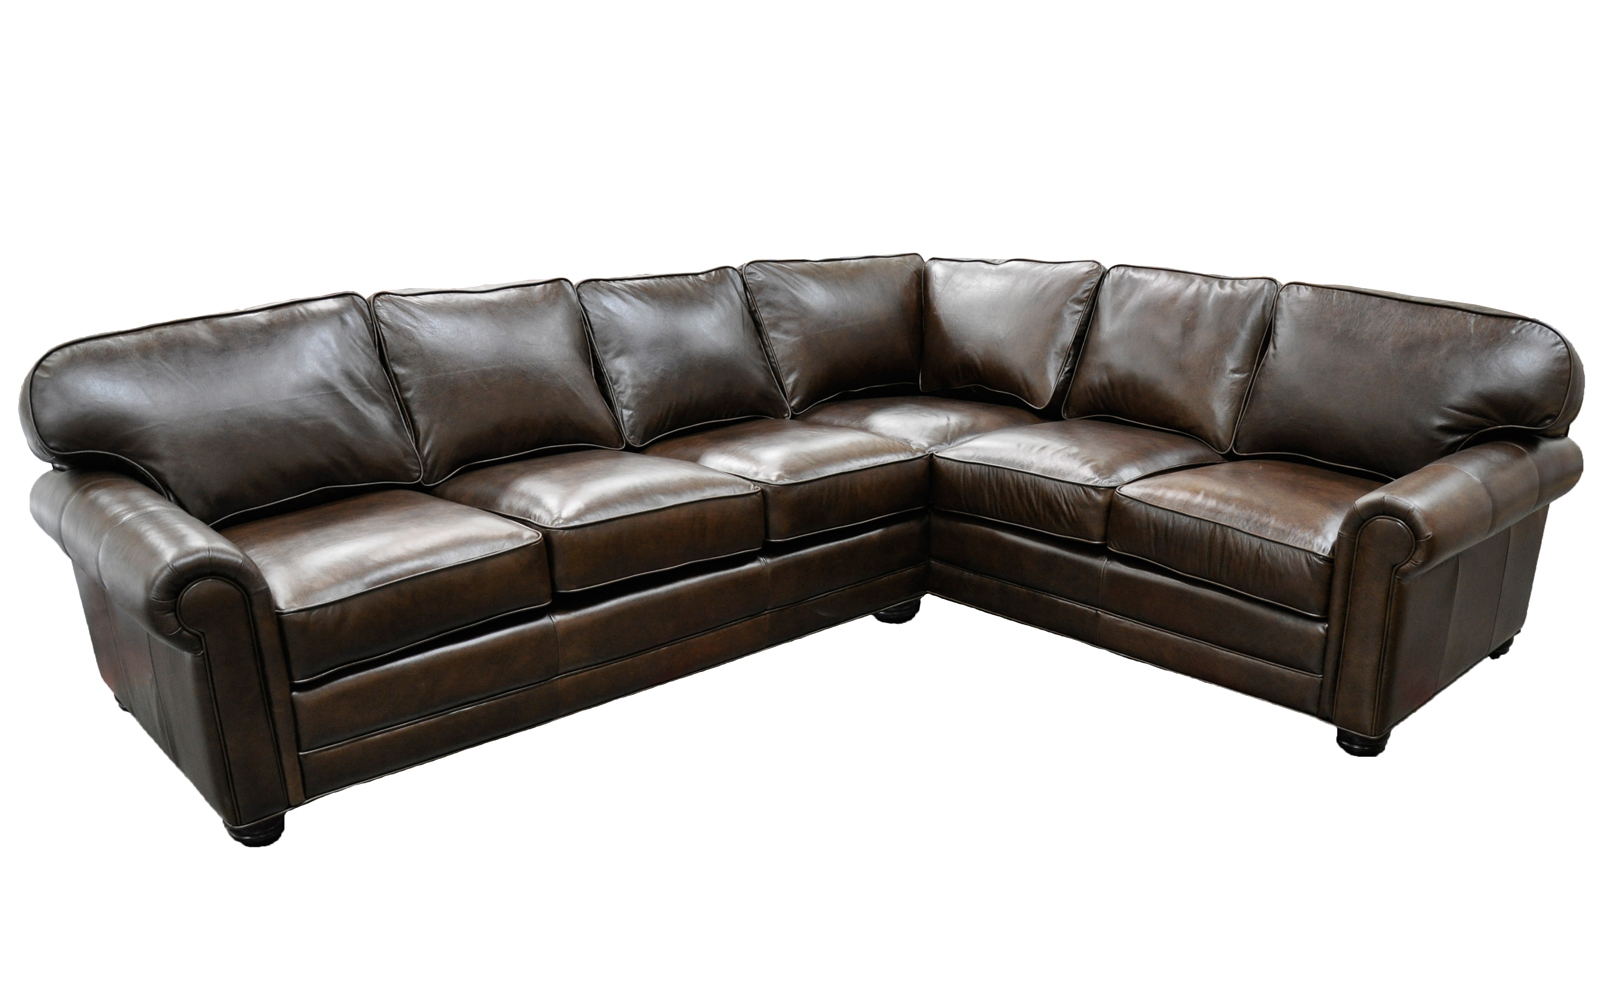 leather plans sleeper sofa all with room homes great furniture sectional best sectionals old living